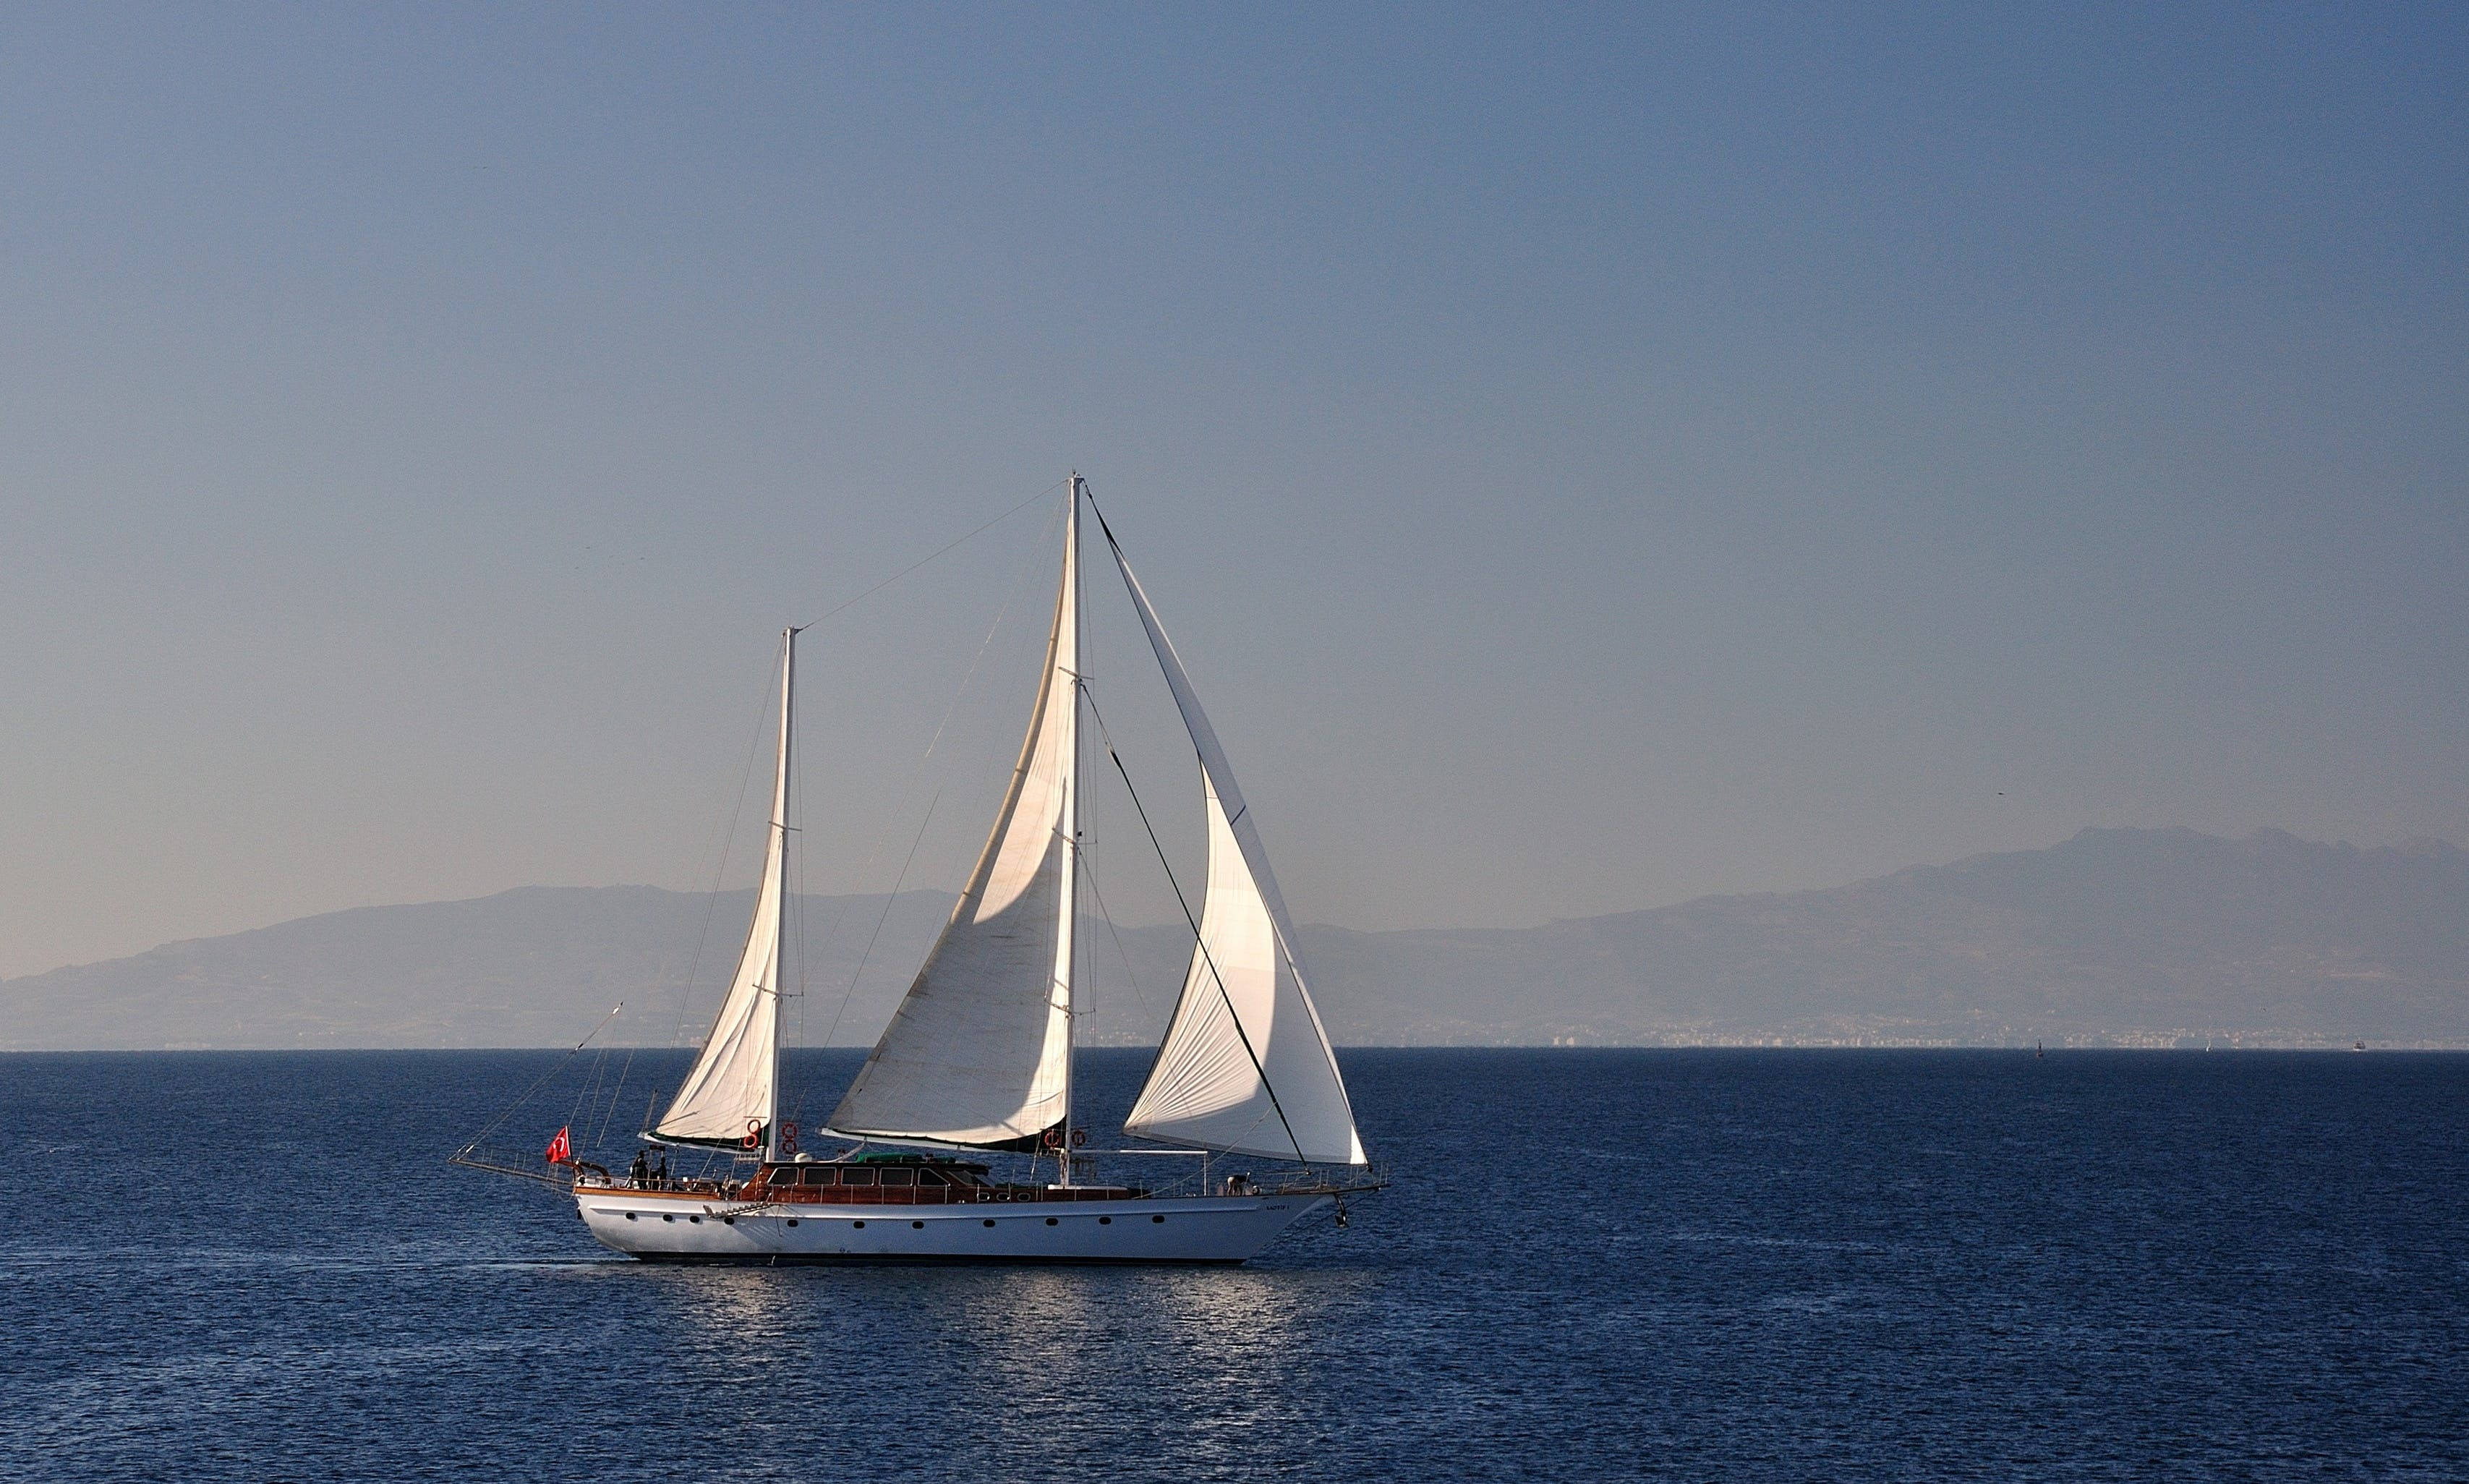 Schooner rental in BODRUM in southwest Turkey